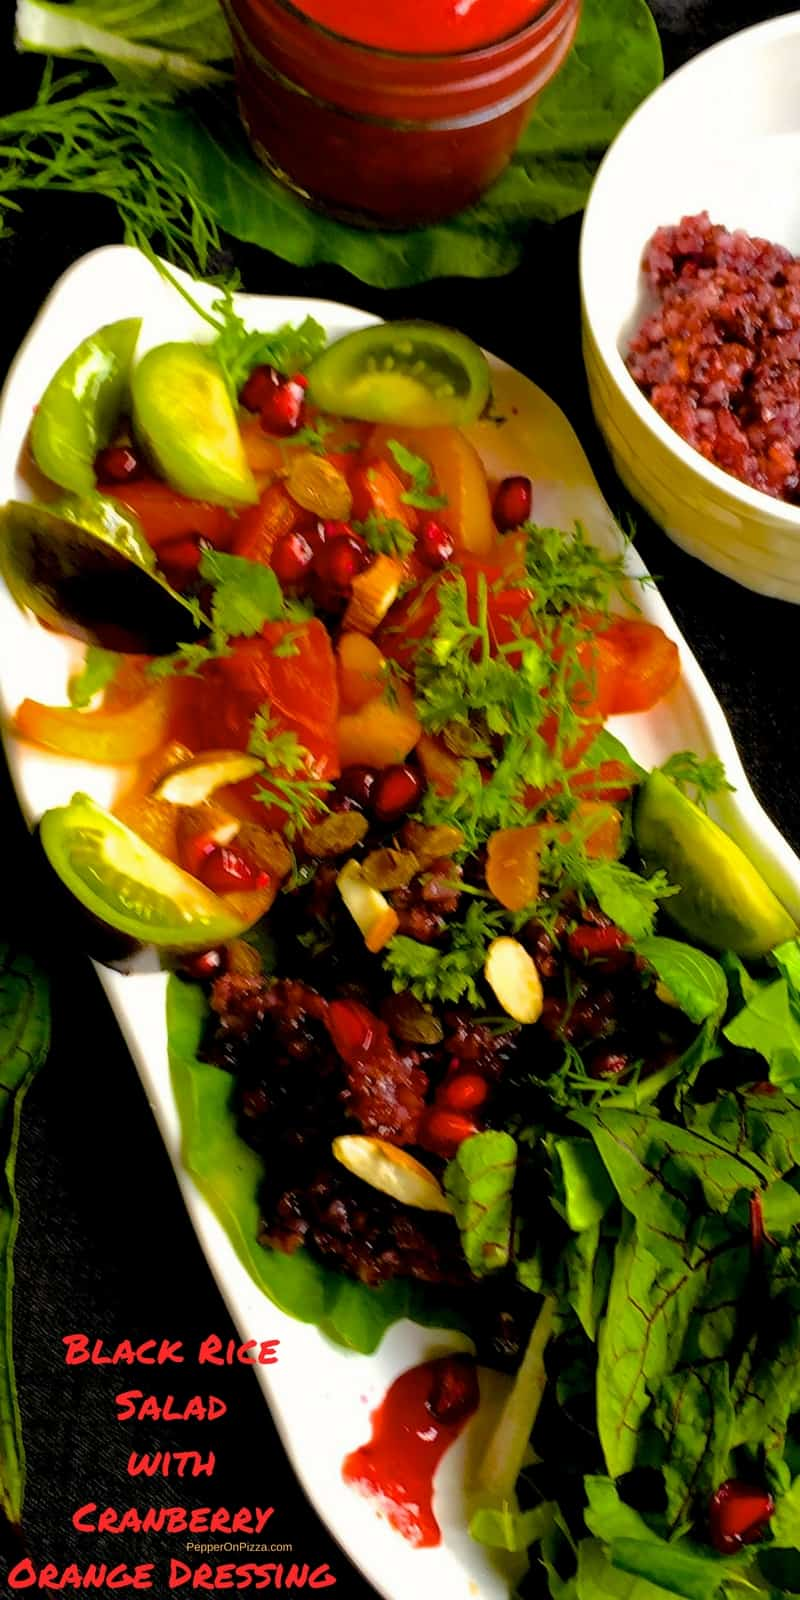 Sticky Black Rice Salad, herbs and cranberry orange dressing. Superfood Black Rice and cranberries are rich in disease fighting antioxidants